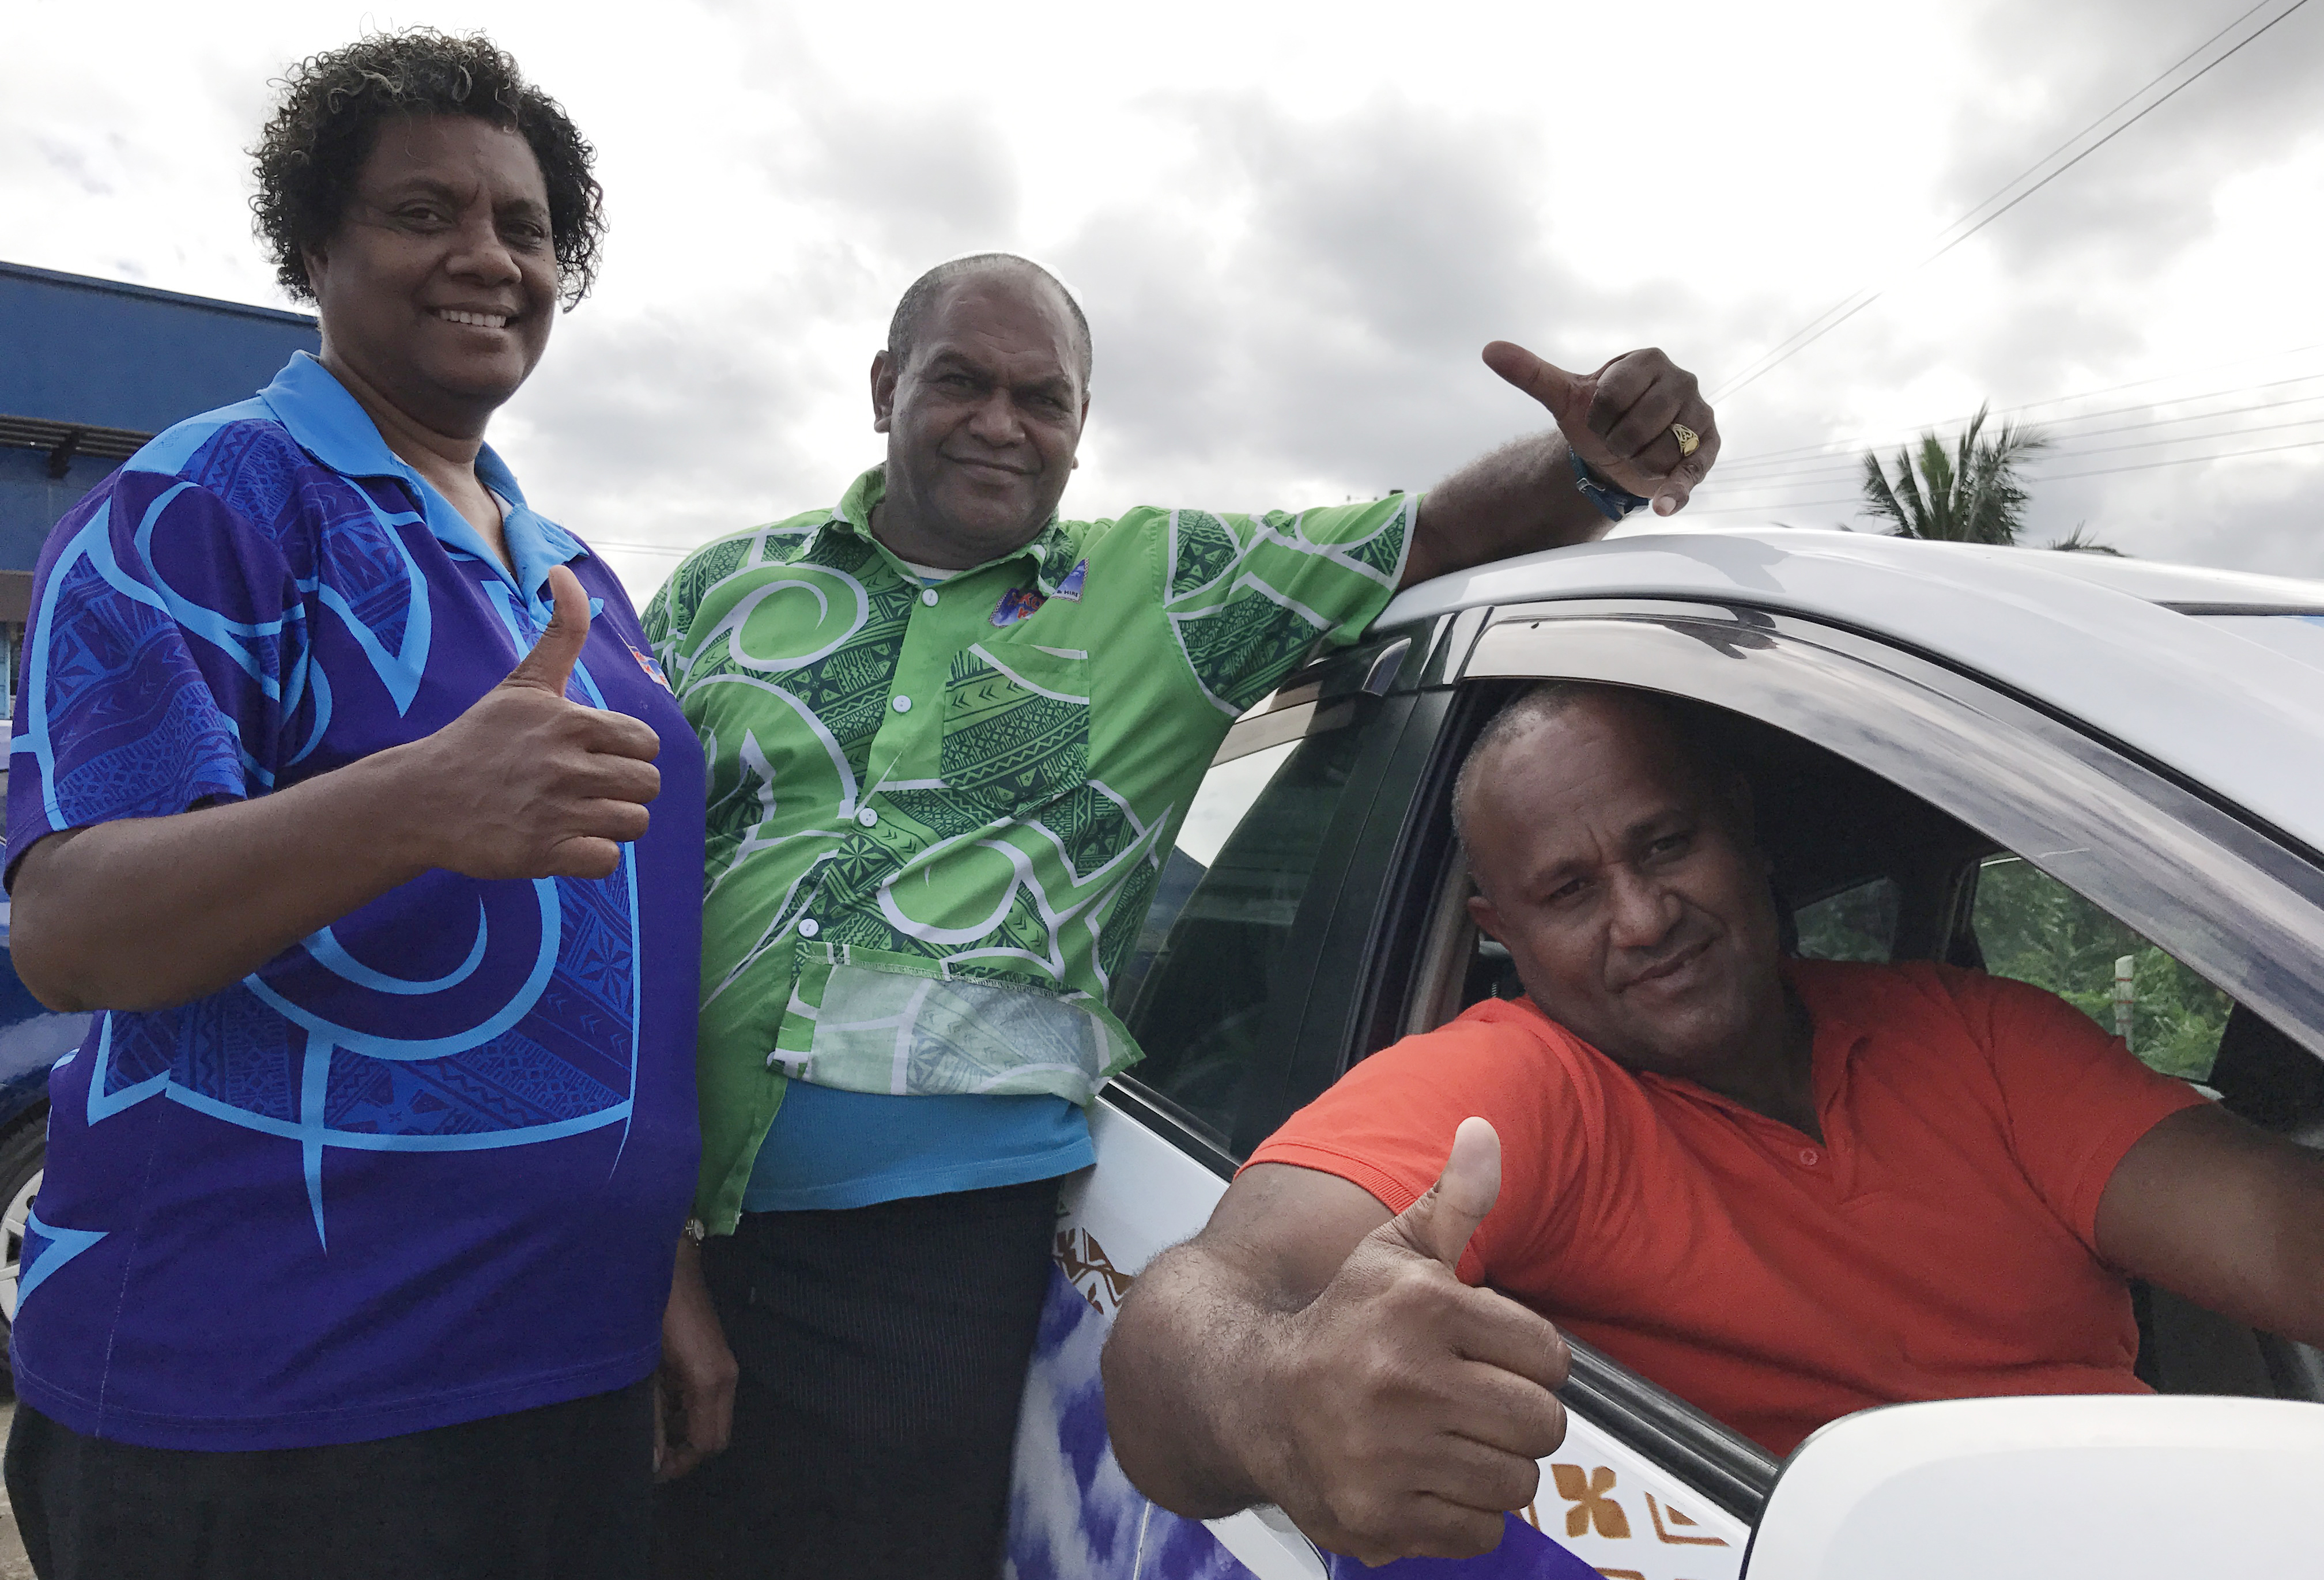 Government's announcement on lifting restriction on taxi permit registration in the 2017-2018 National Budget is well-received by Tiko Kece taxi drivers. Photo: Ronald Kumar